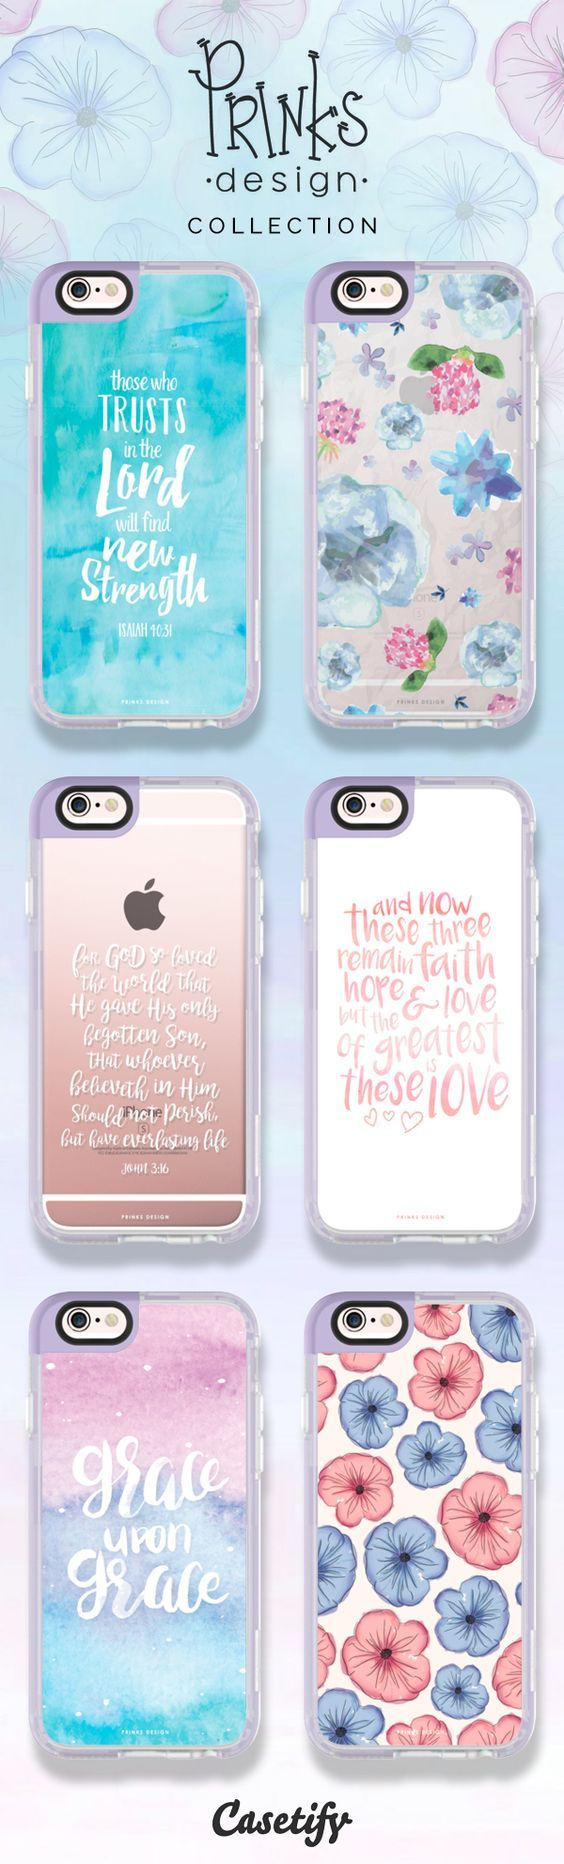 best phonecases images on pinterest phone cases iphone cases